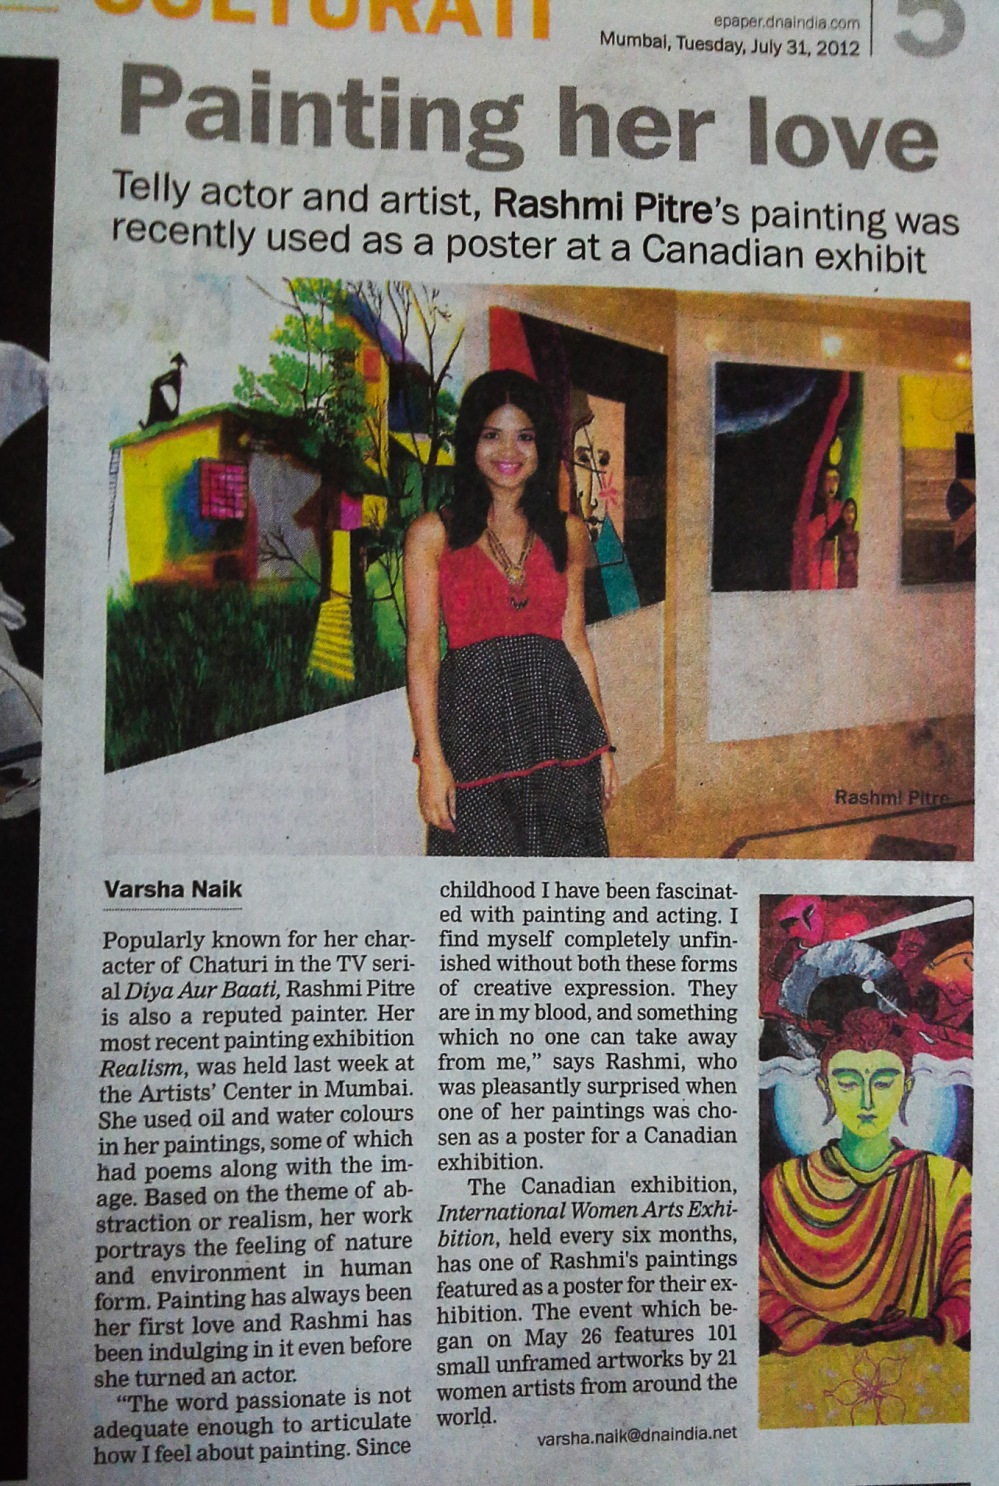 An Interview in DNA about the Canada